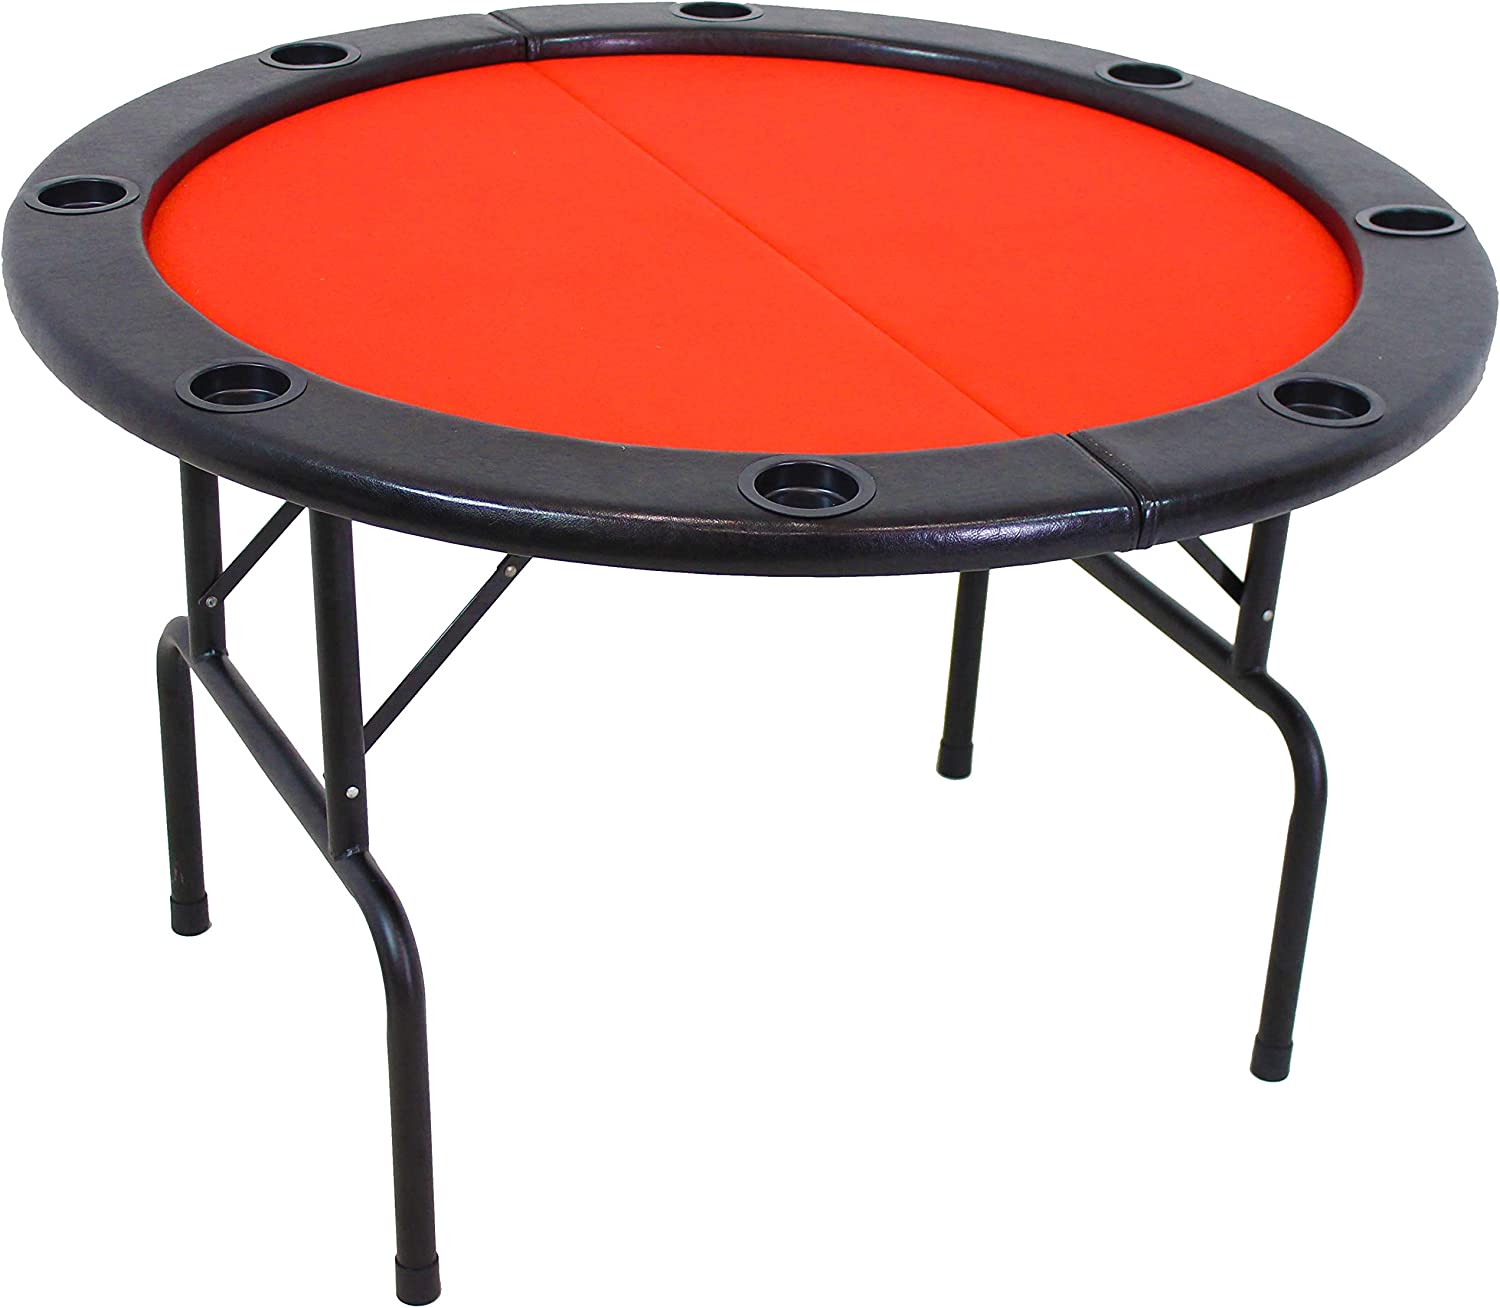 Amazon Com Sunnydaze Folding Round Poker Table For 6 Players With Cushioned Rail And Built In Cup Holders 47 Inch Diameter Sports Outdoors